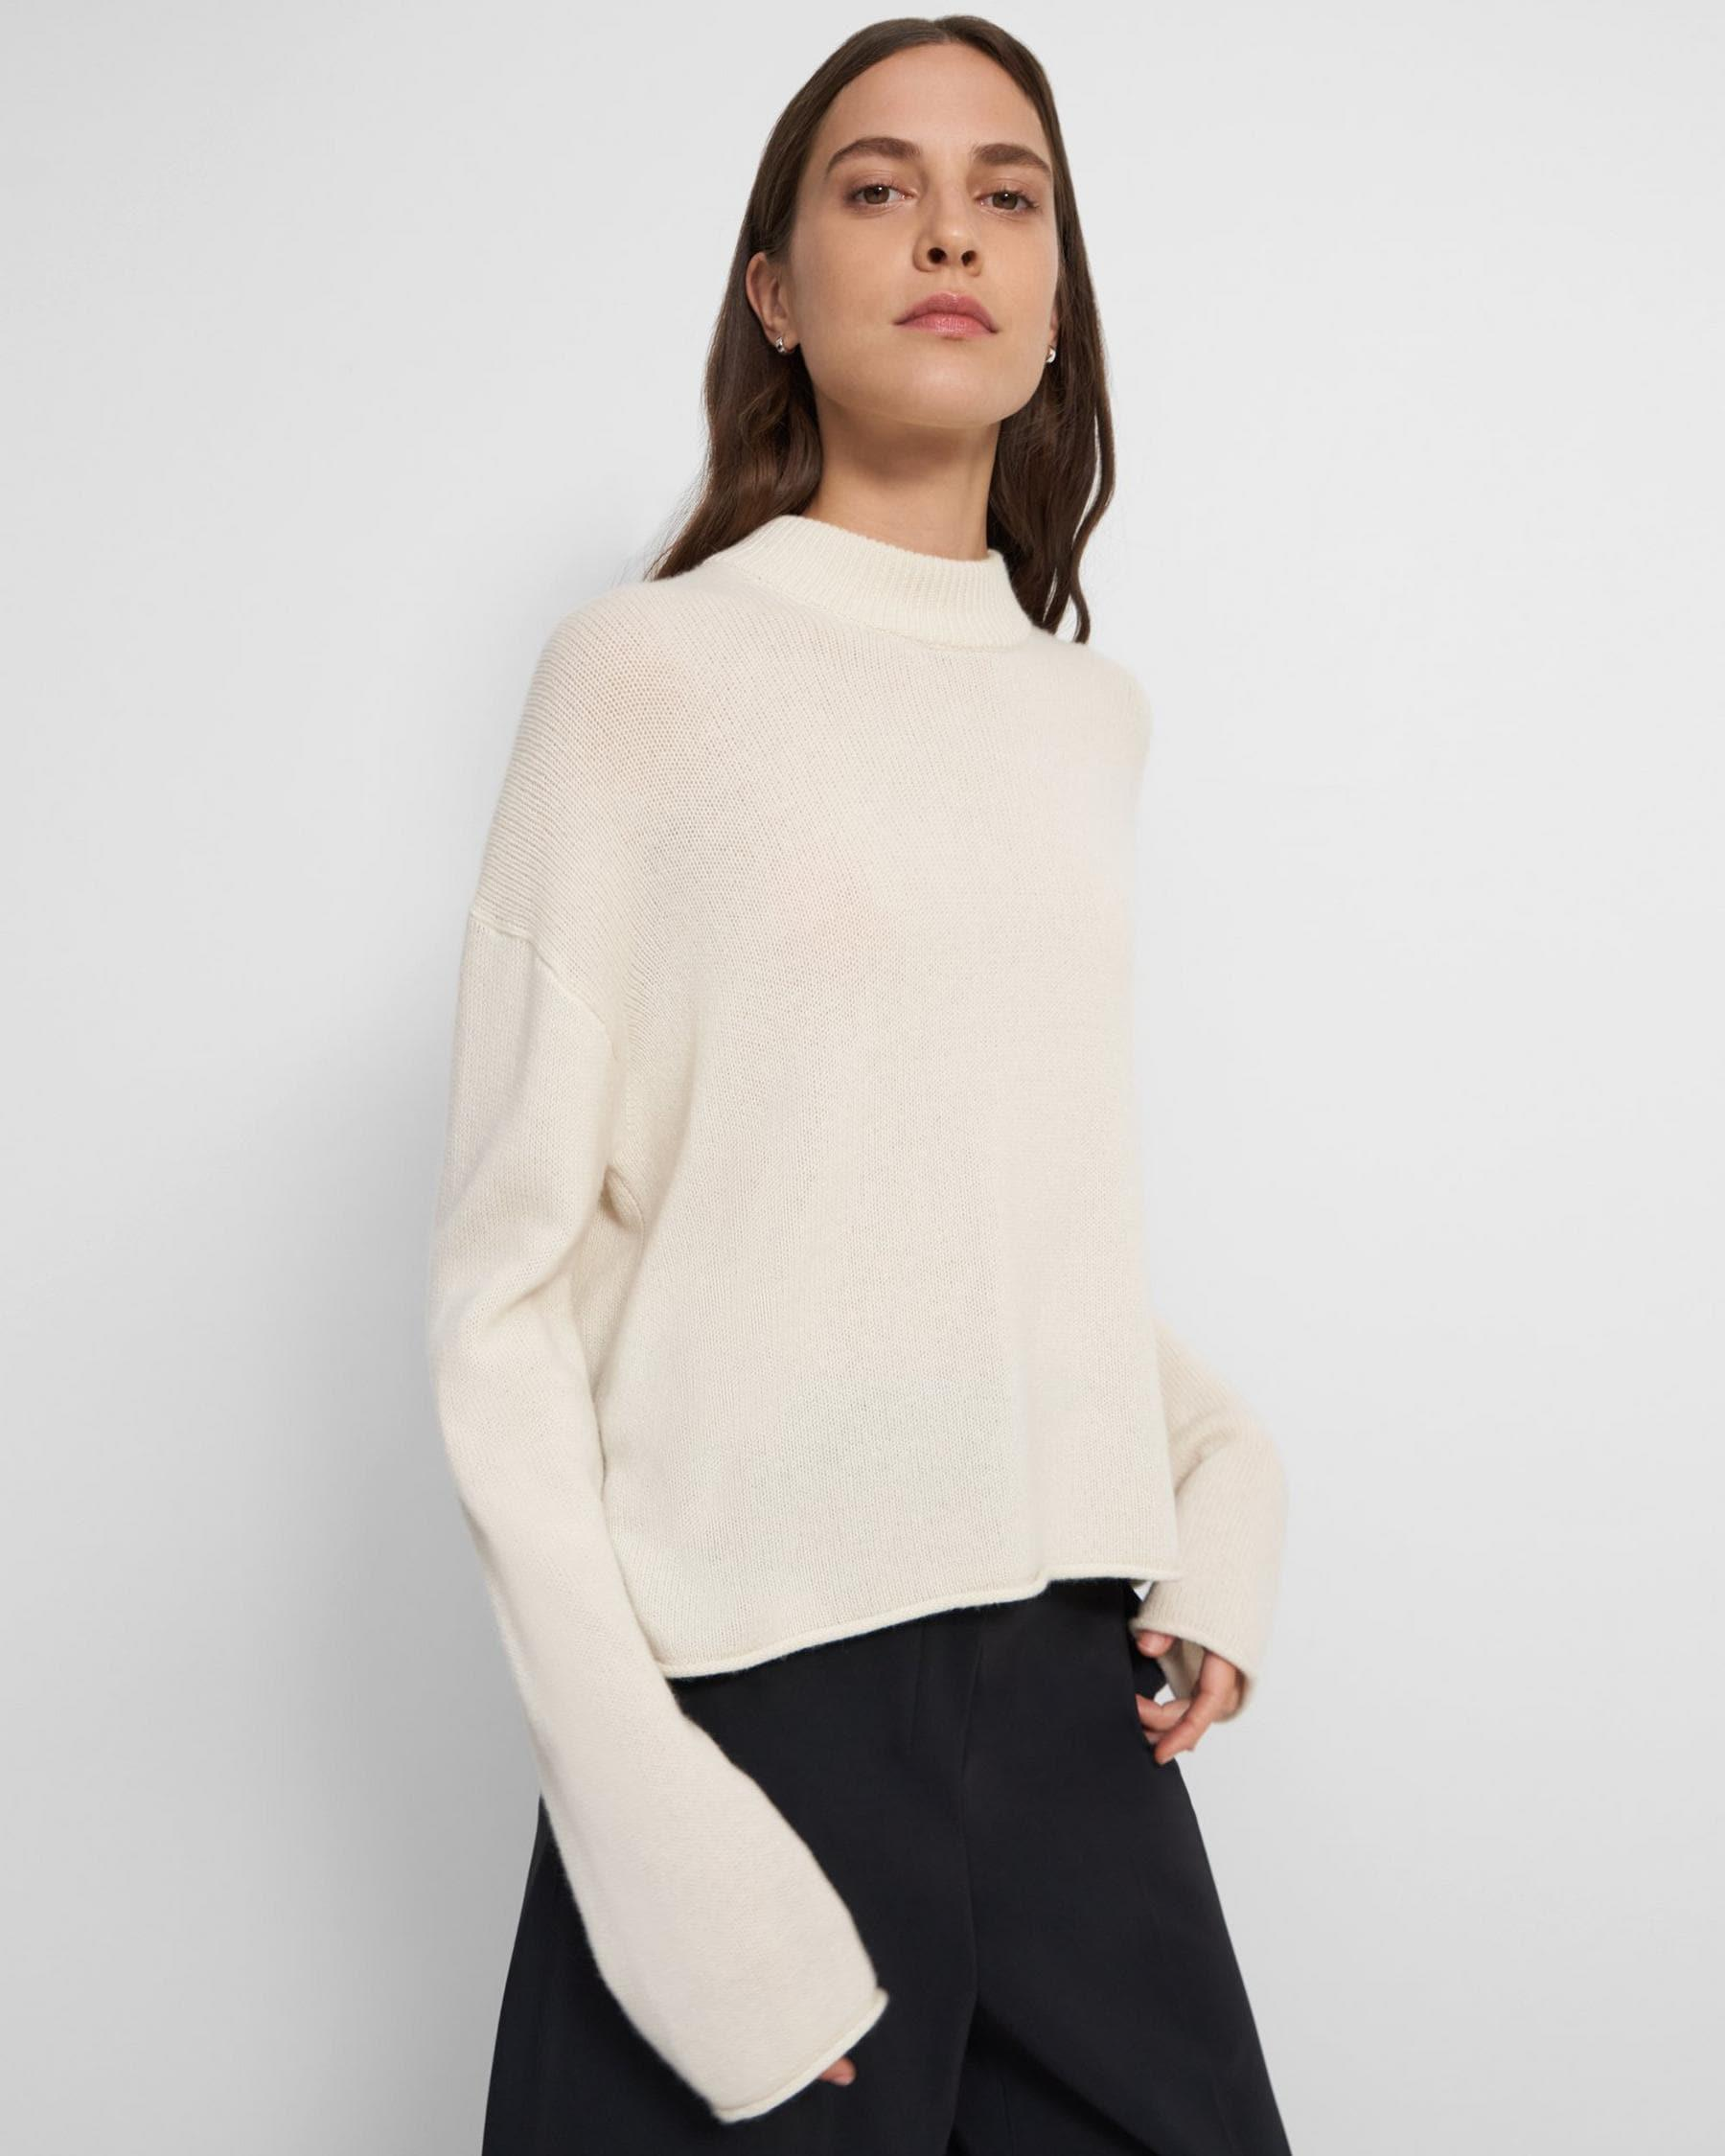 Cropped Mock Neck Sweater in Cashmere